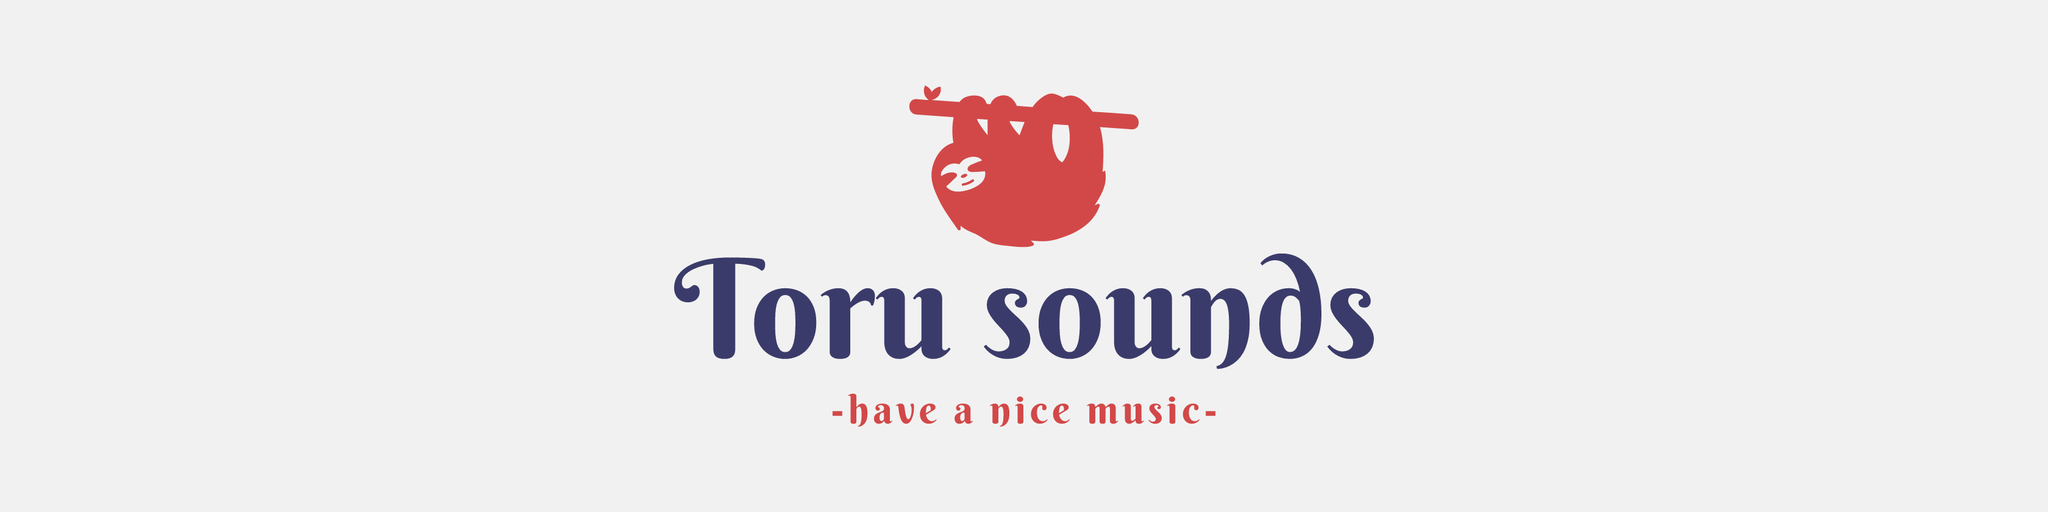 Toru sounds BASE店